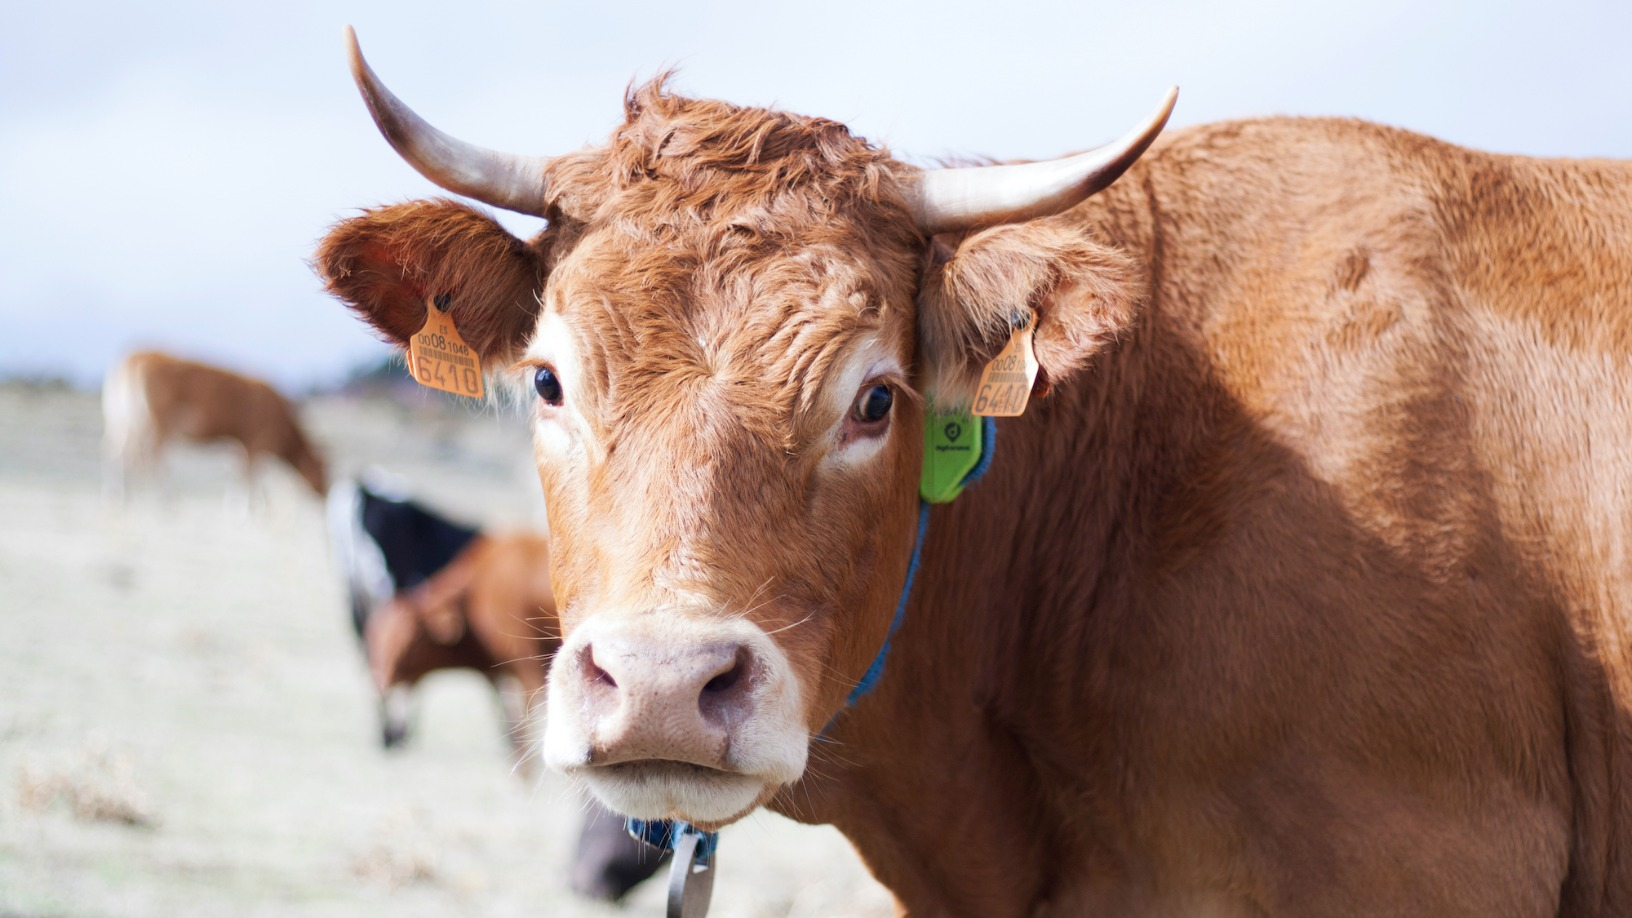 Smart agritech pioneer Digitanimal helps ranchers better manage their cattle and ensure animal welfare